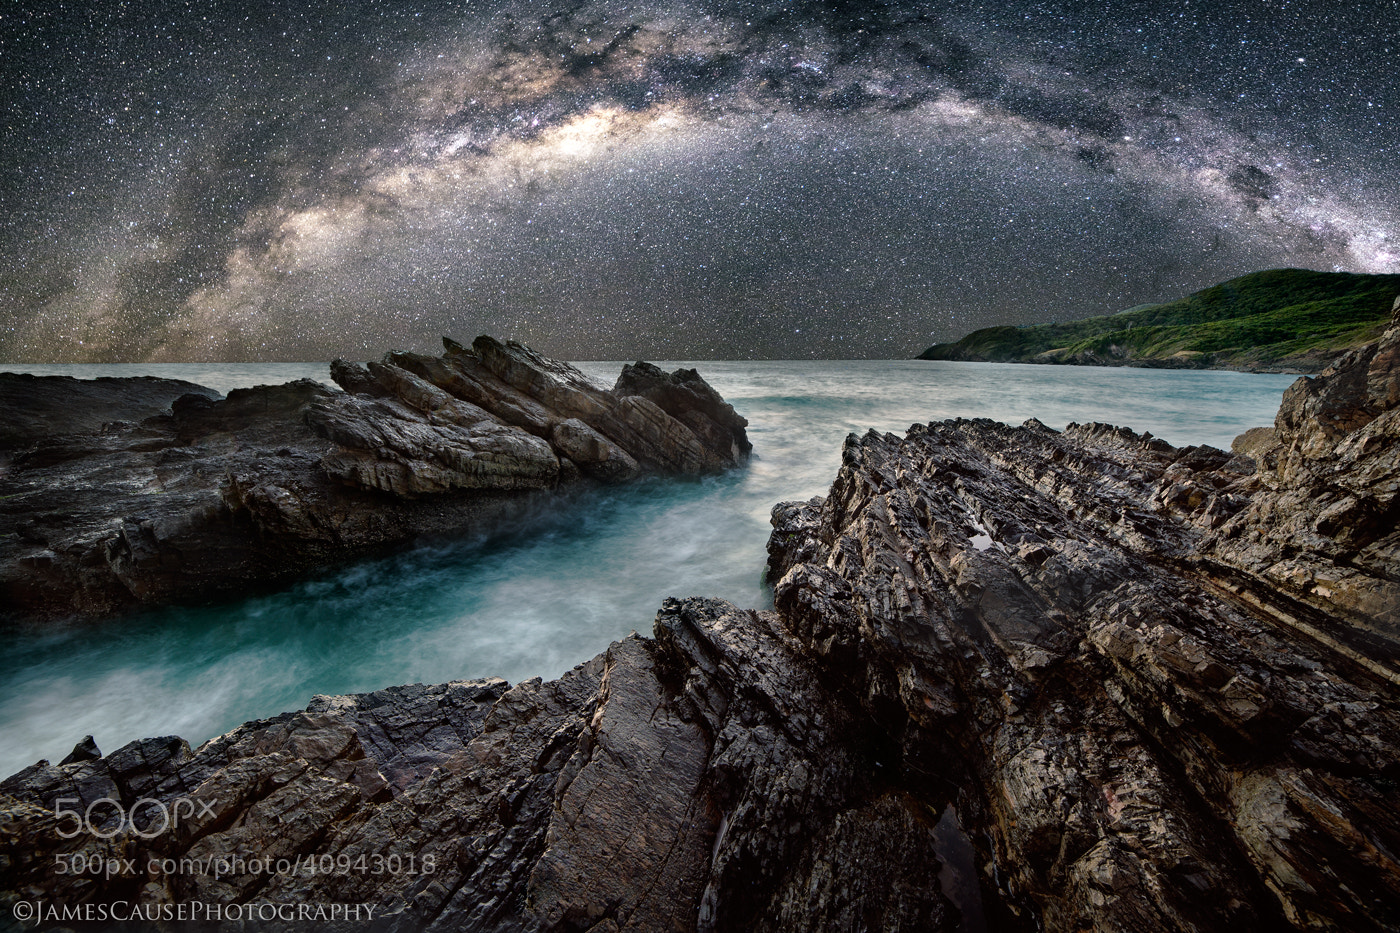 Photograph Milky Way rises over the ocean by James Cause on 500px